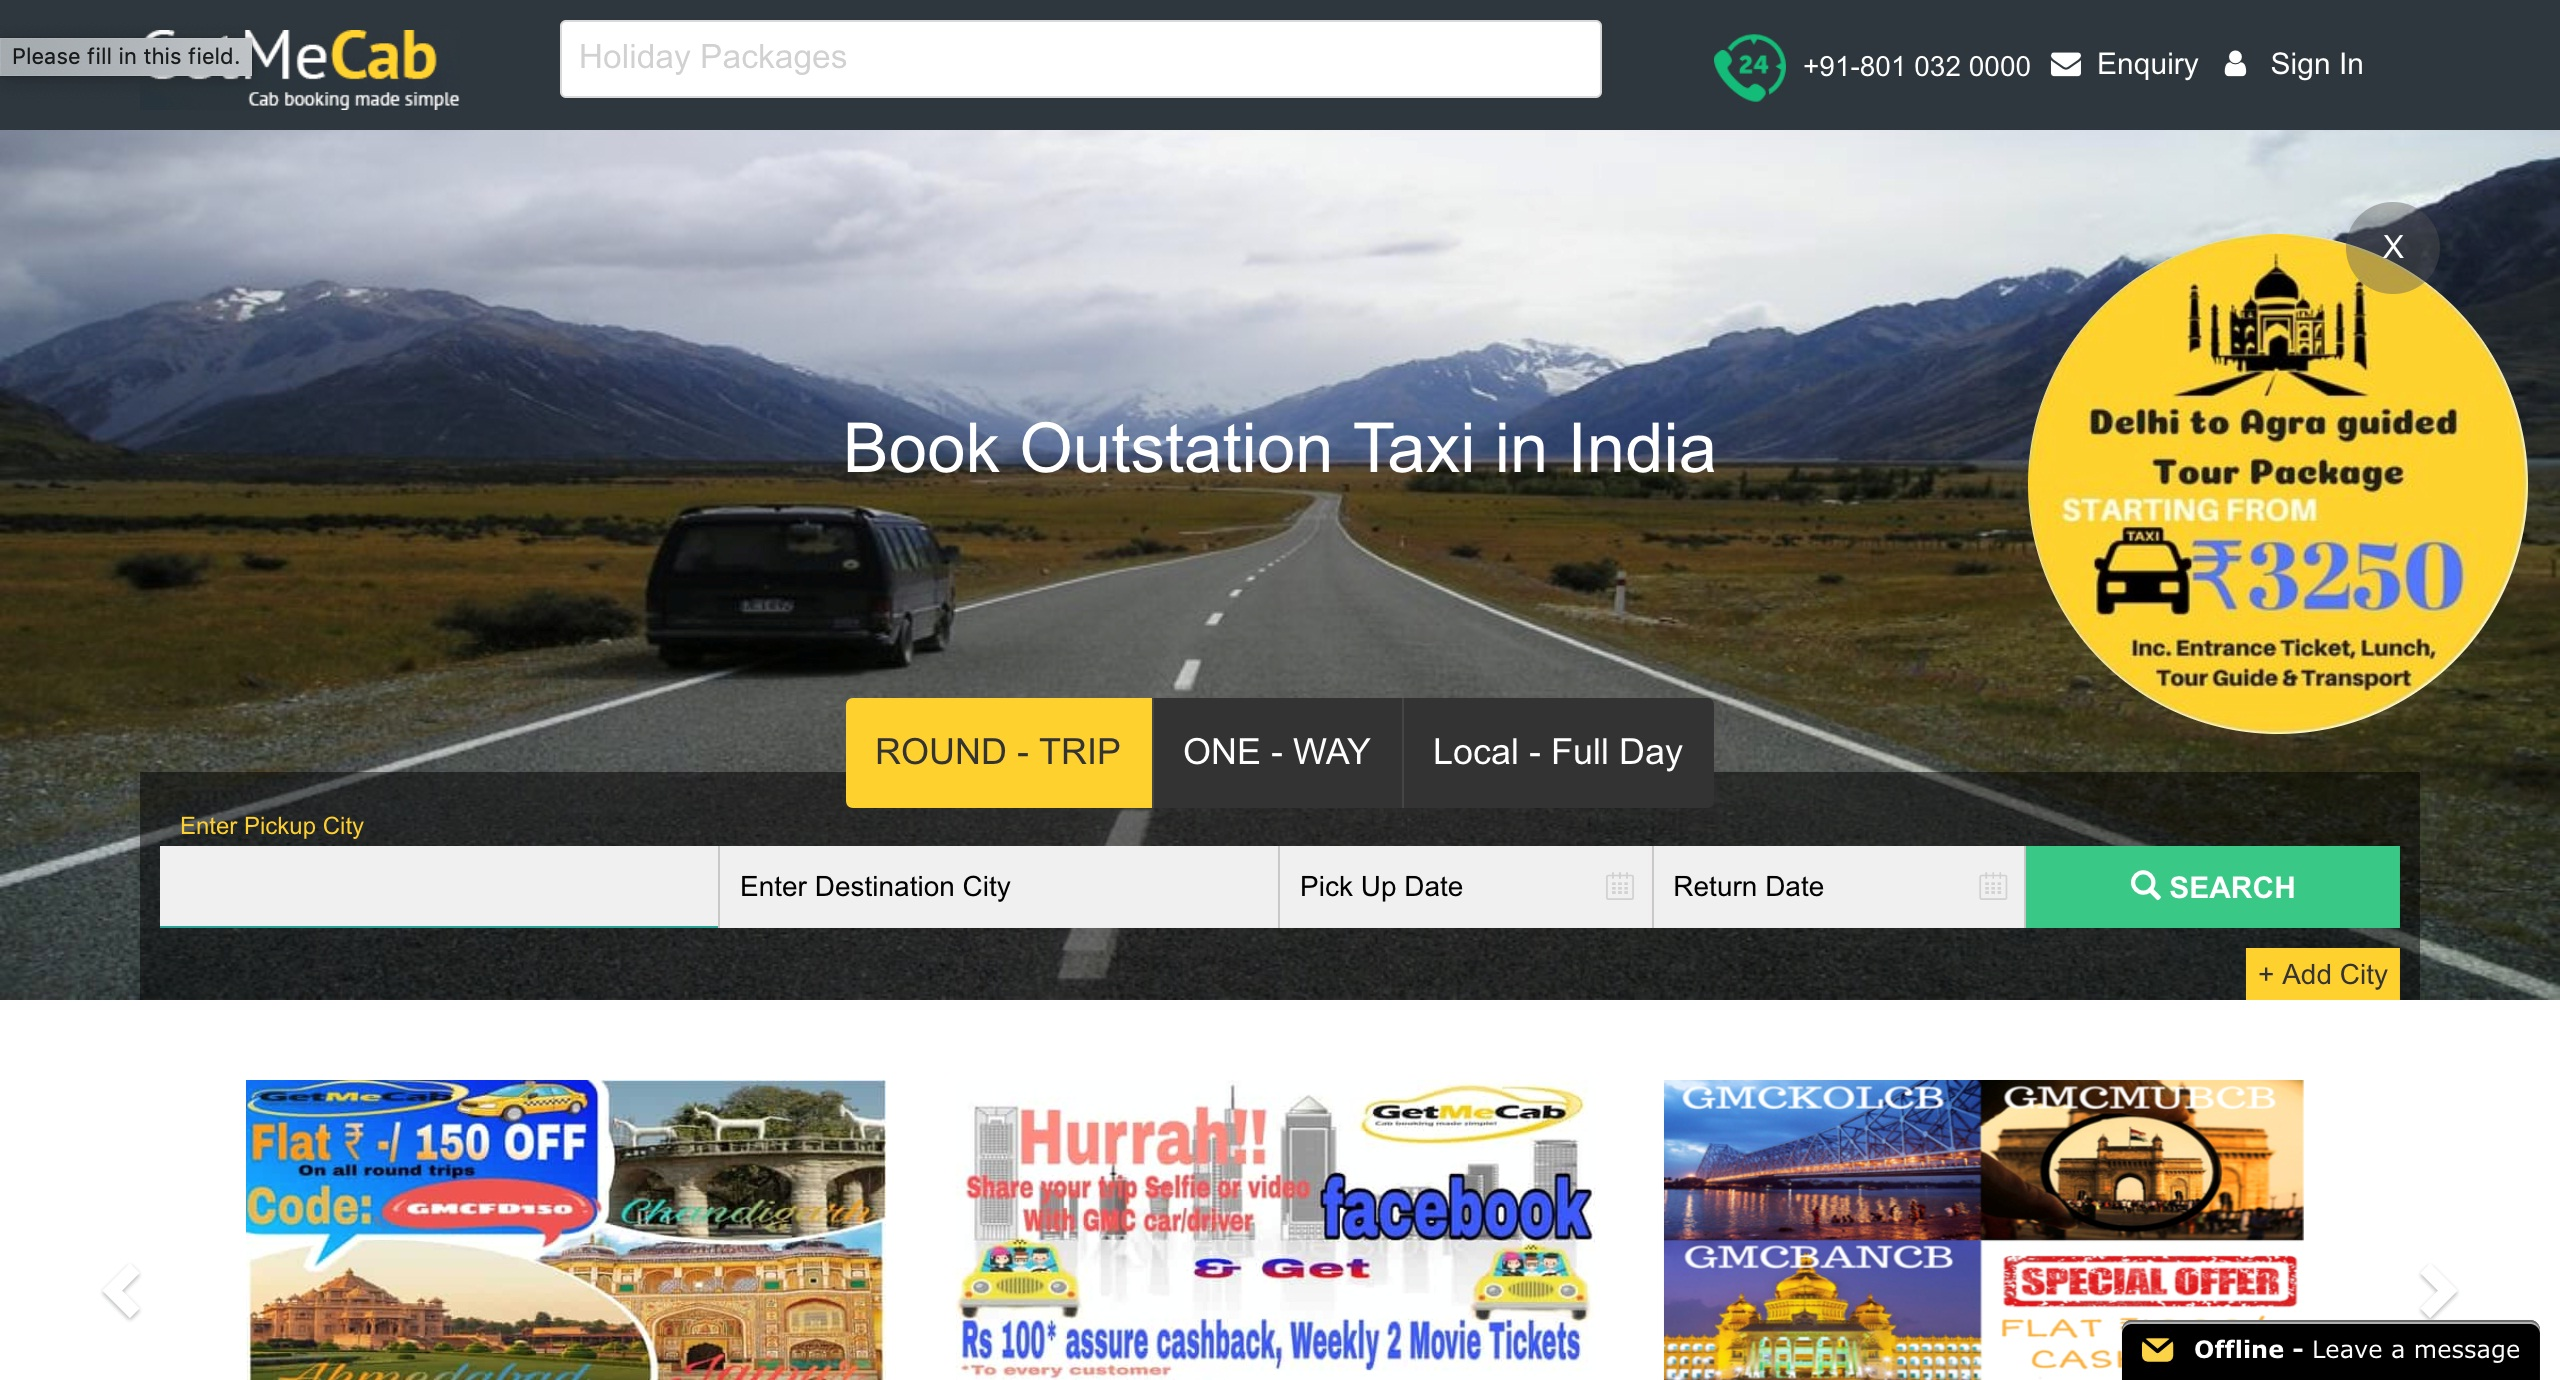 The 5 Best Intercity Cab Services in Delhi